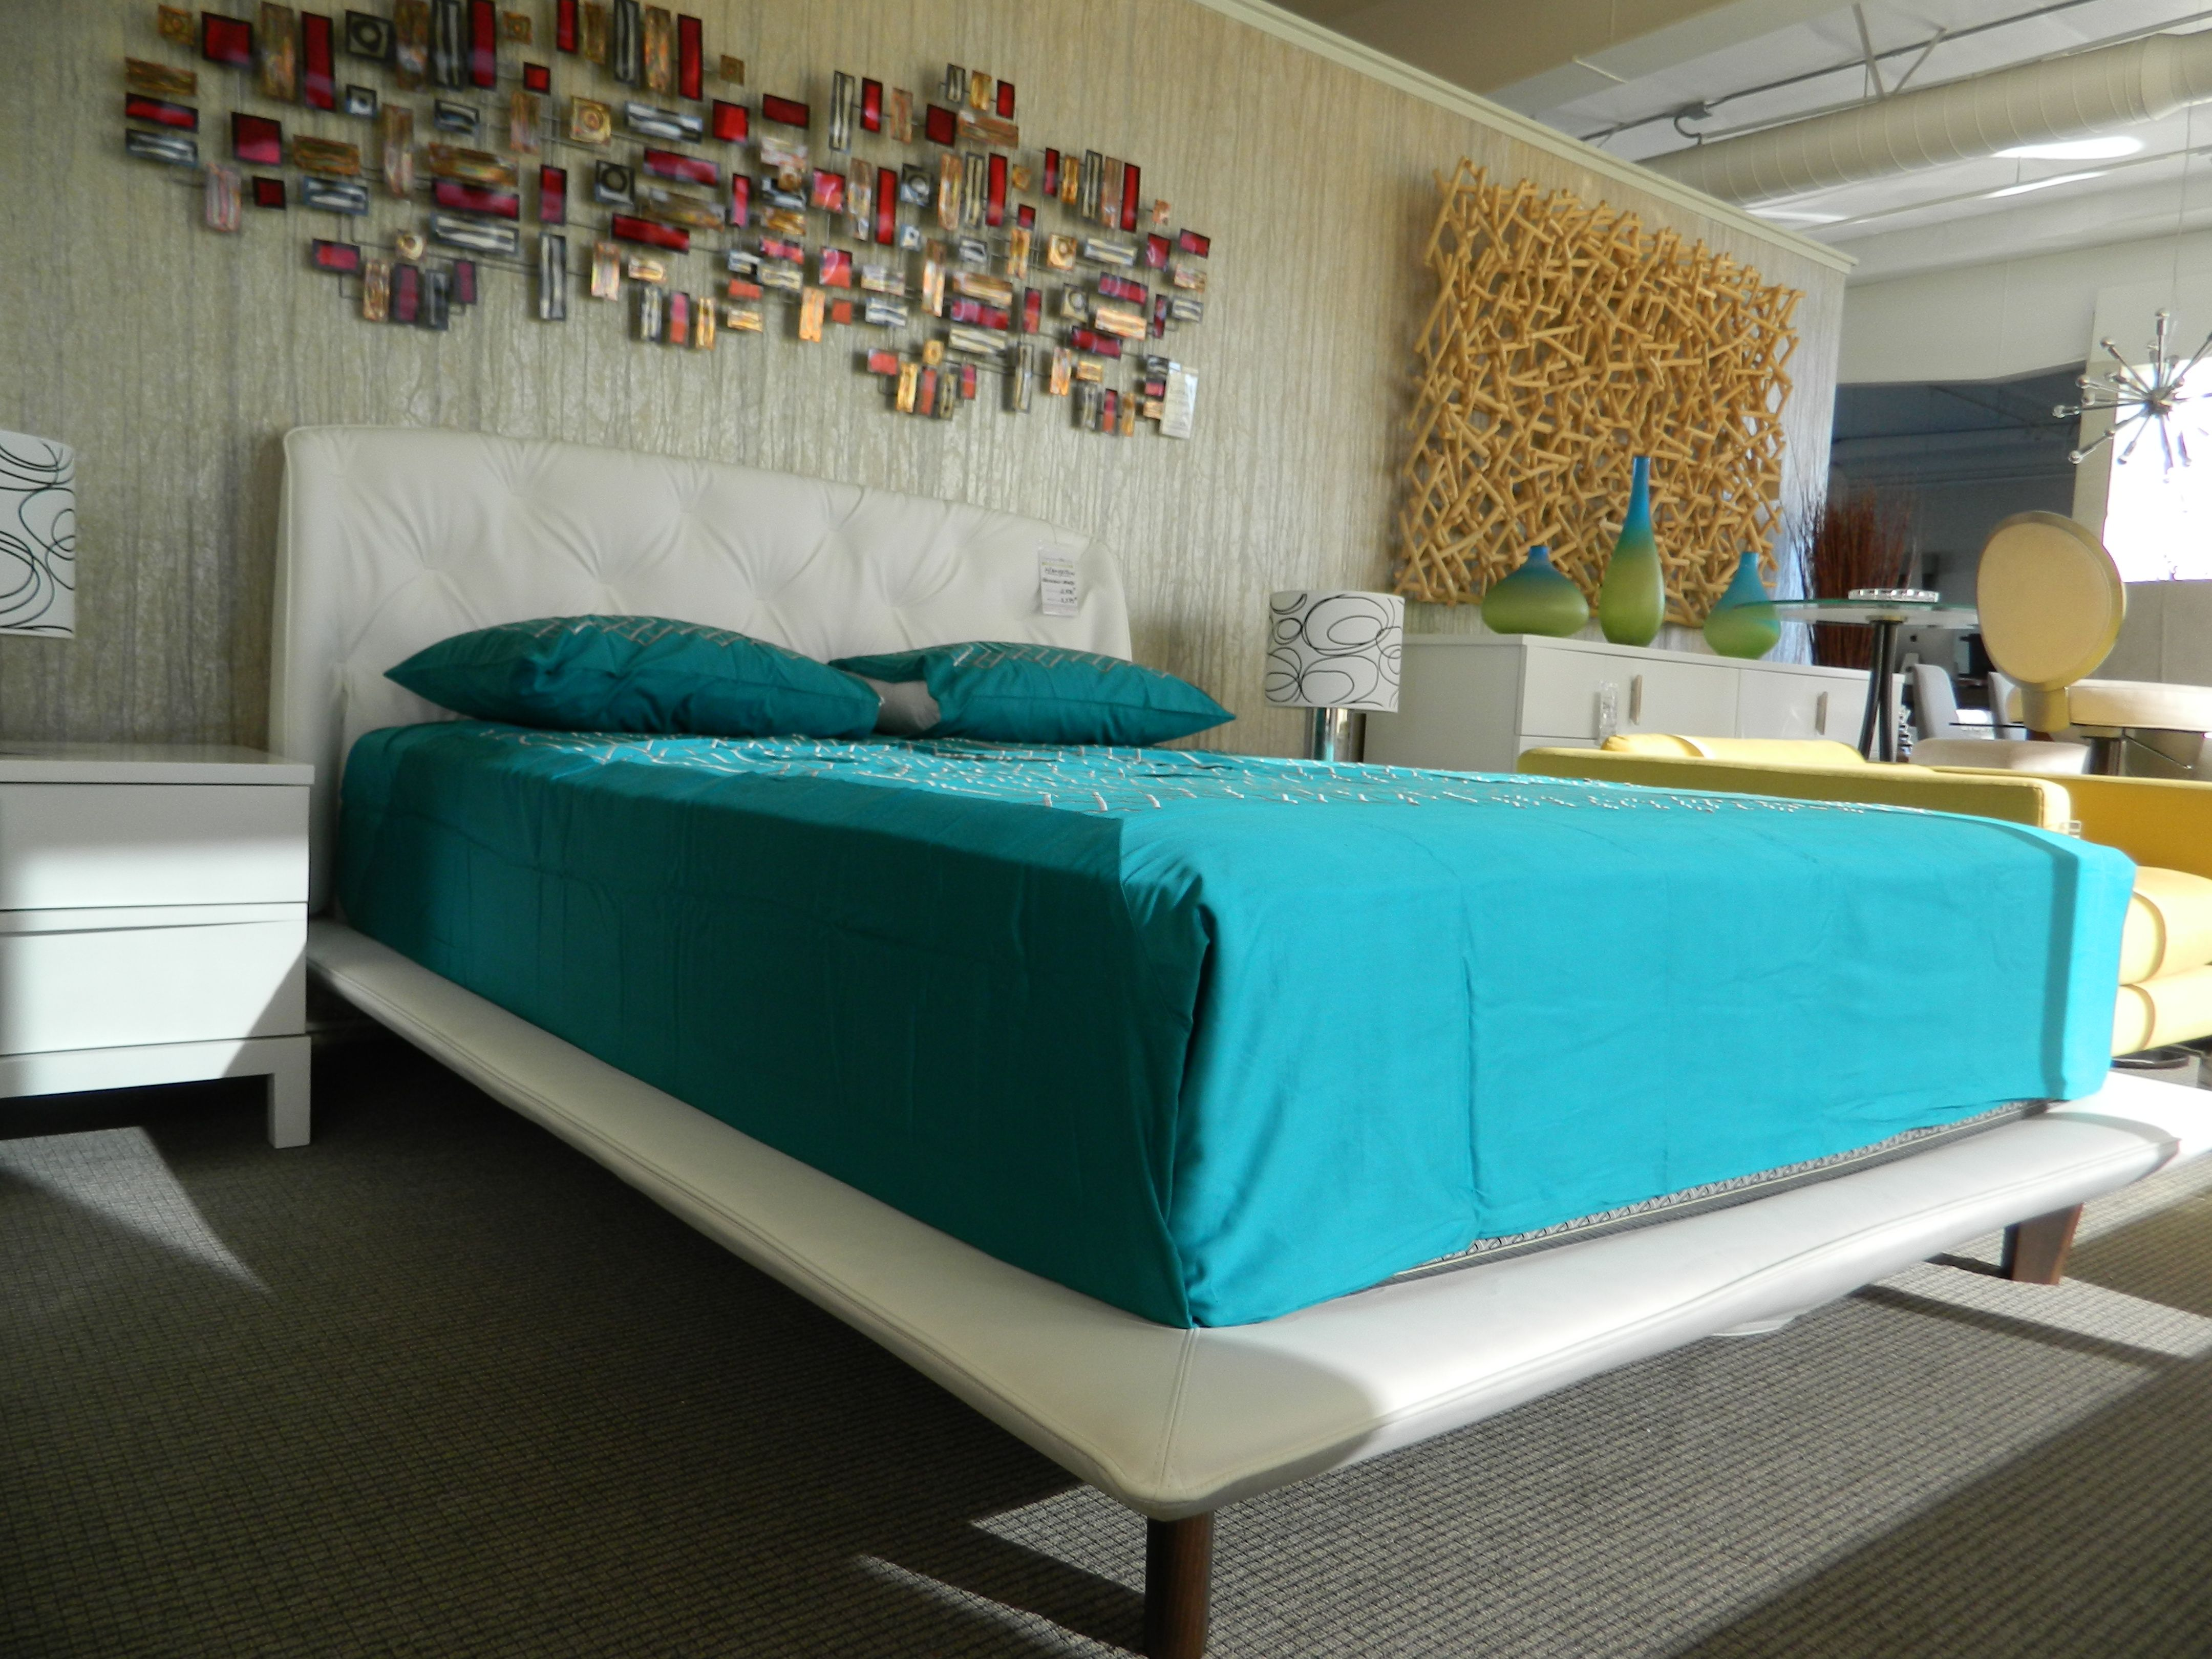 Explore Bed In, 3/4 Beds, And More!